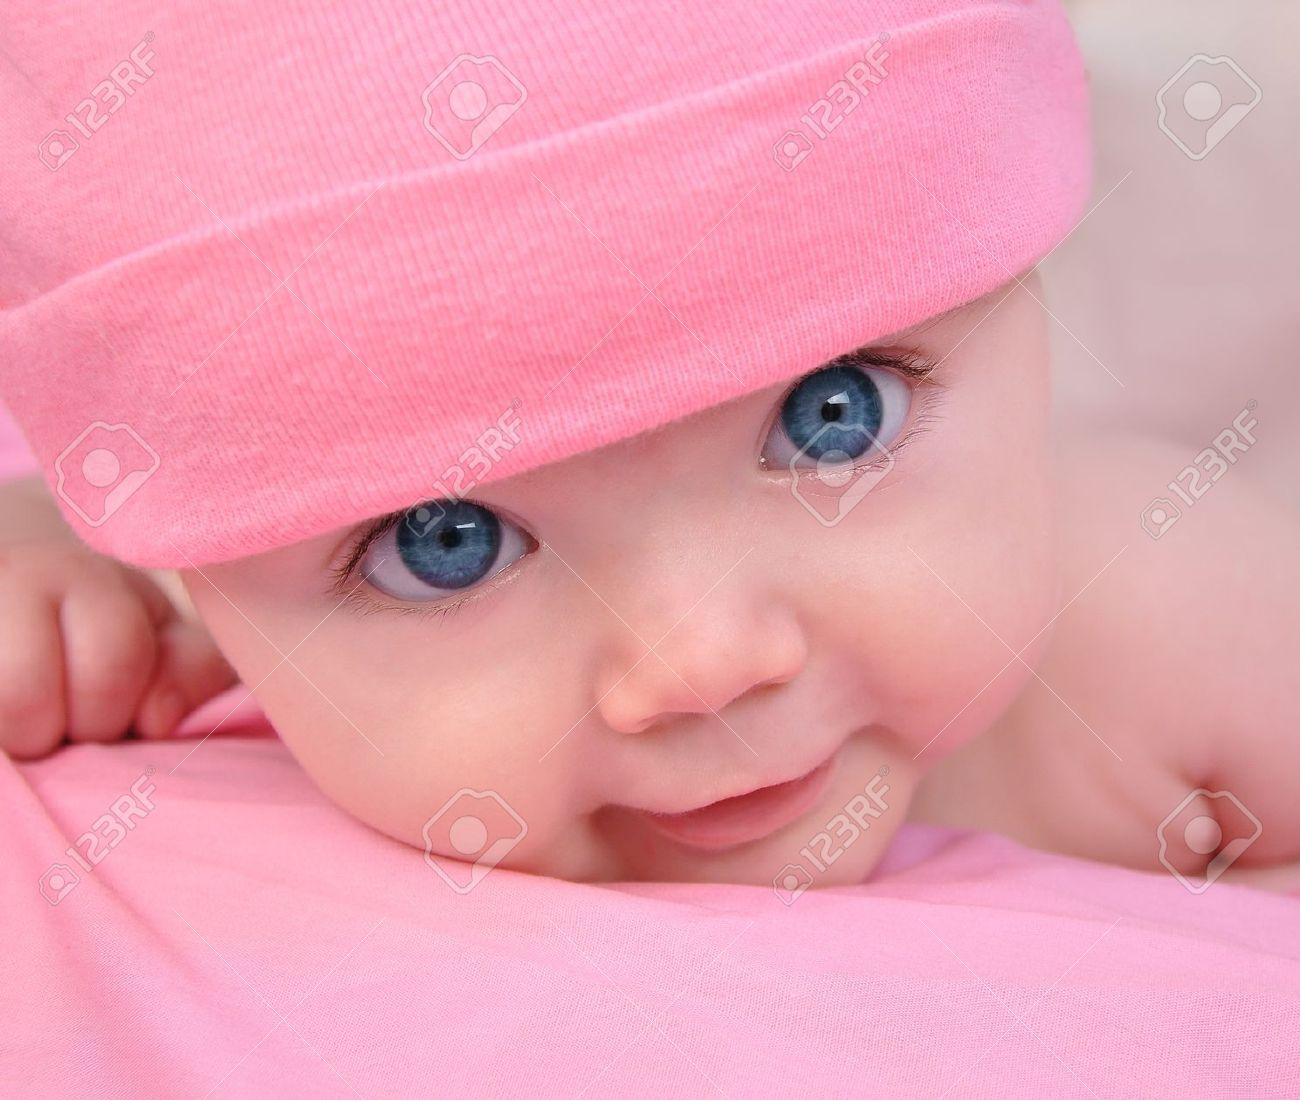 A Cute Little Baby Girl Is Staring Up And Is On A Pink Blanket Blue Eyed Baby Little Baby Girl Cute Little Baby